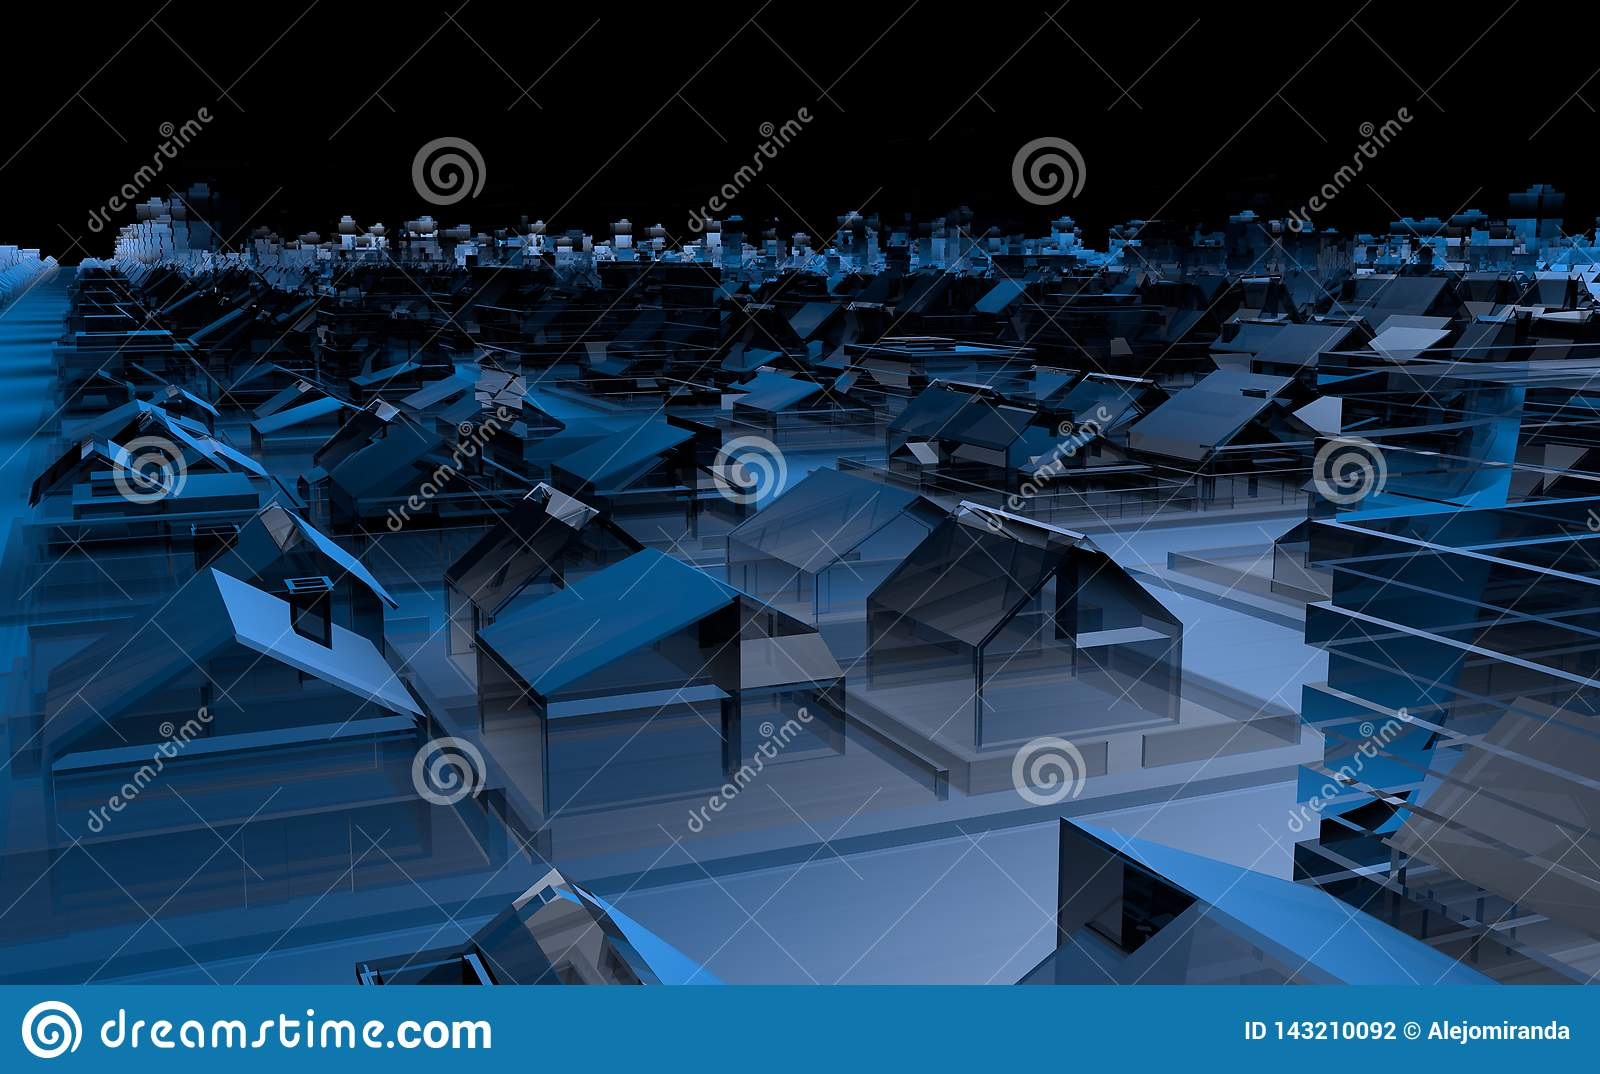 Top view of a city full of blue transparent houses and buildings with abstract buildings on the horizon with black sky